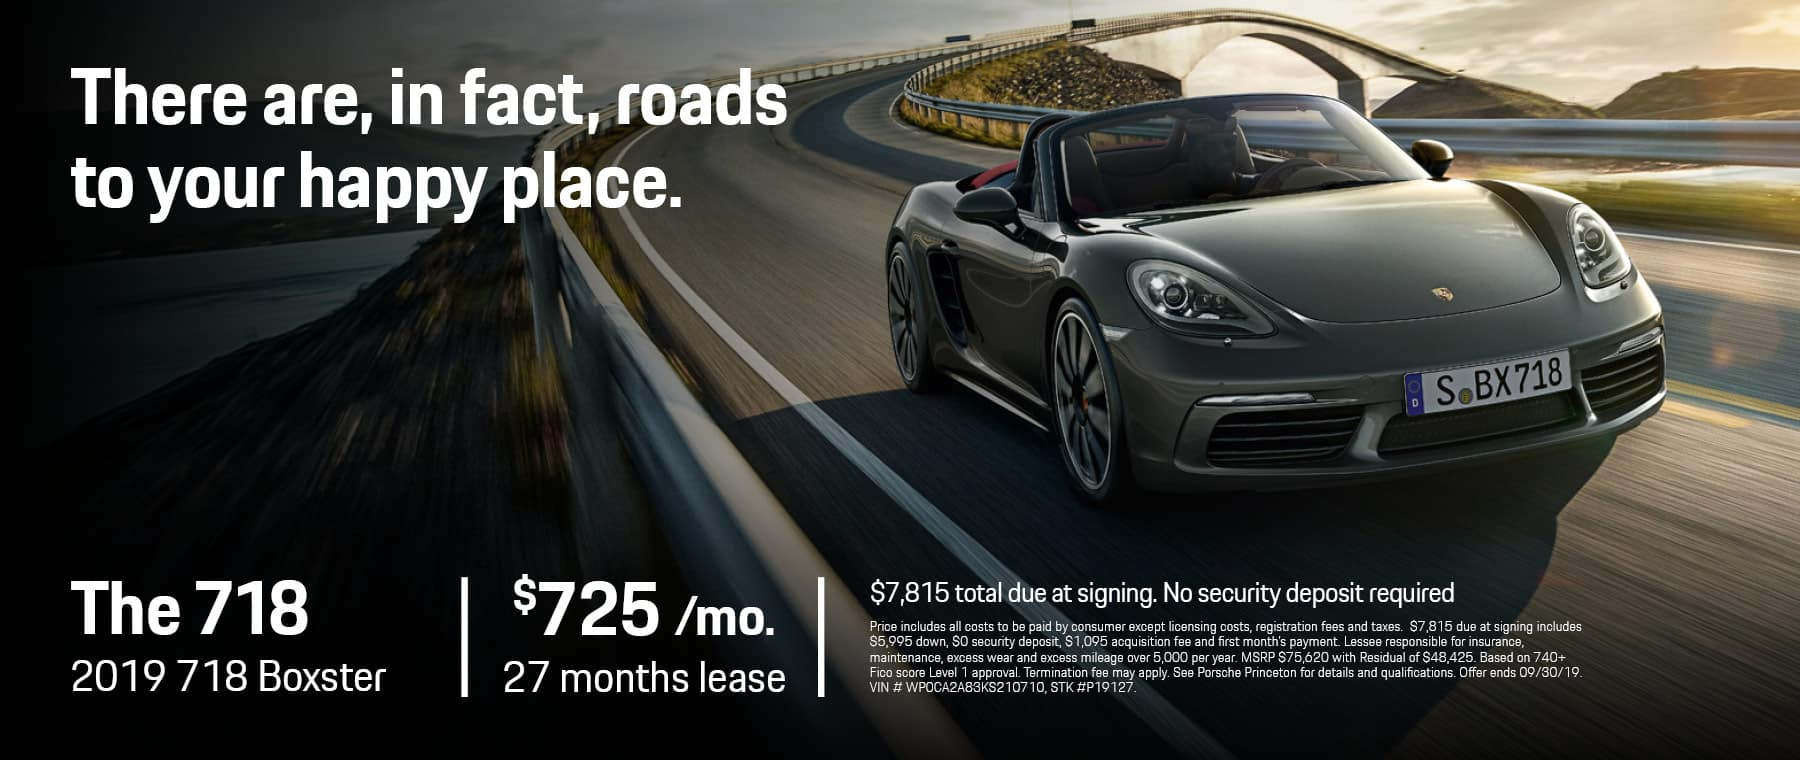 Princeton Porsche Luxury New Used Car Dealer In Lawrence Township Nj